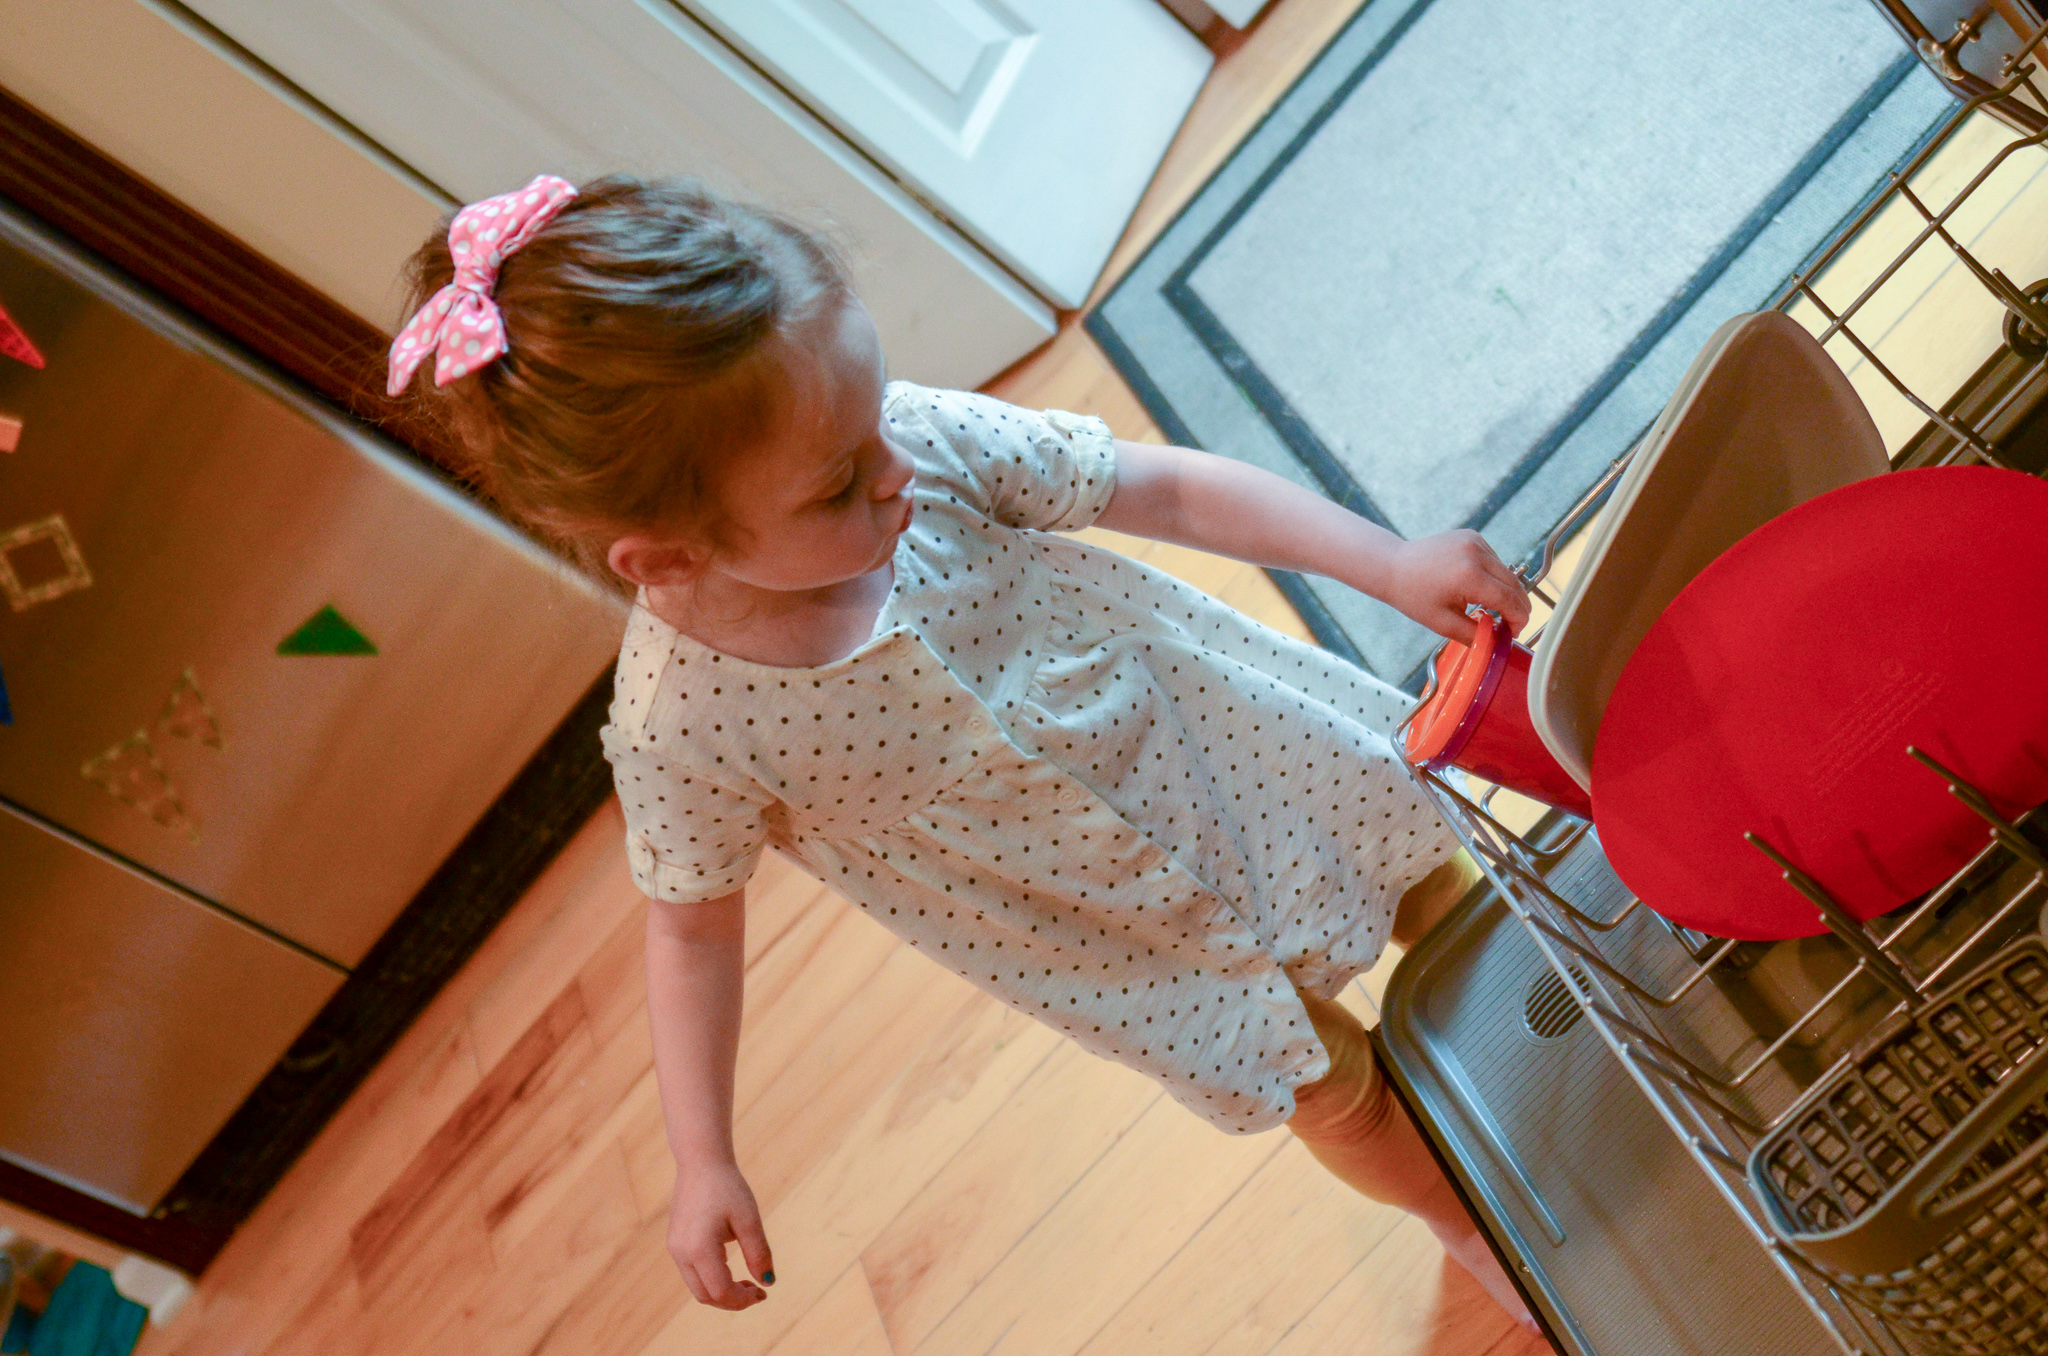 20 Chores for Your Toddler - By She Got Guts